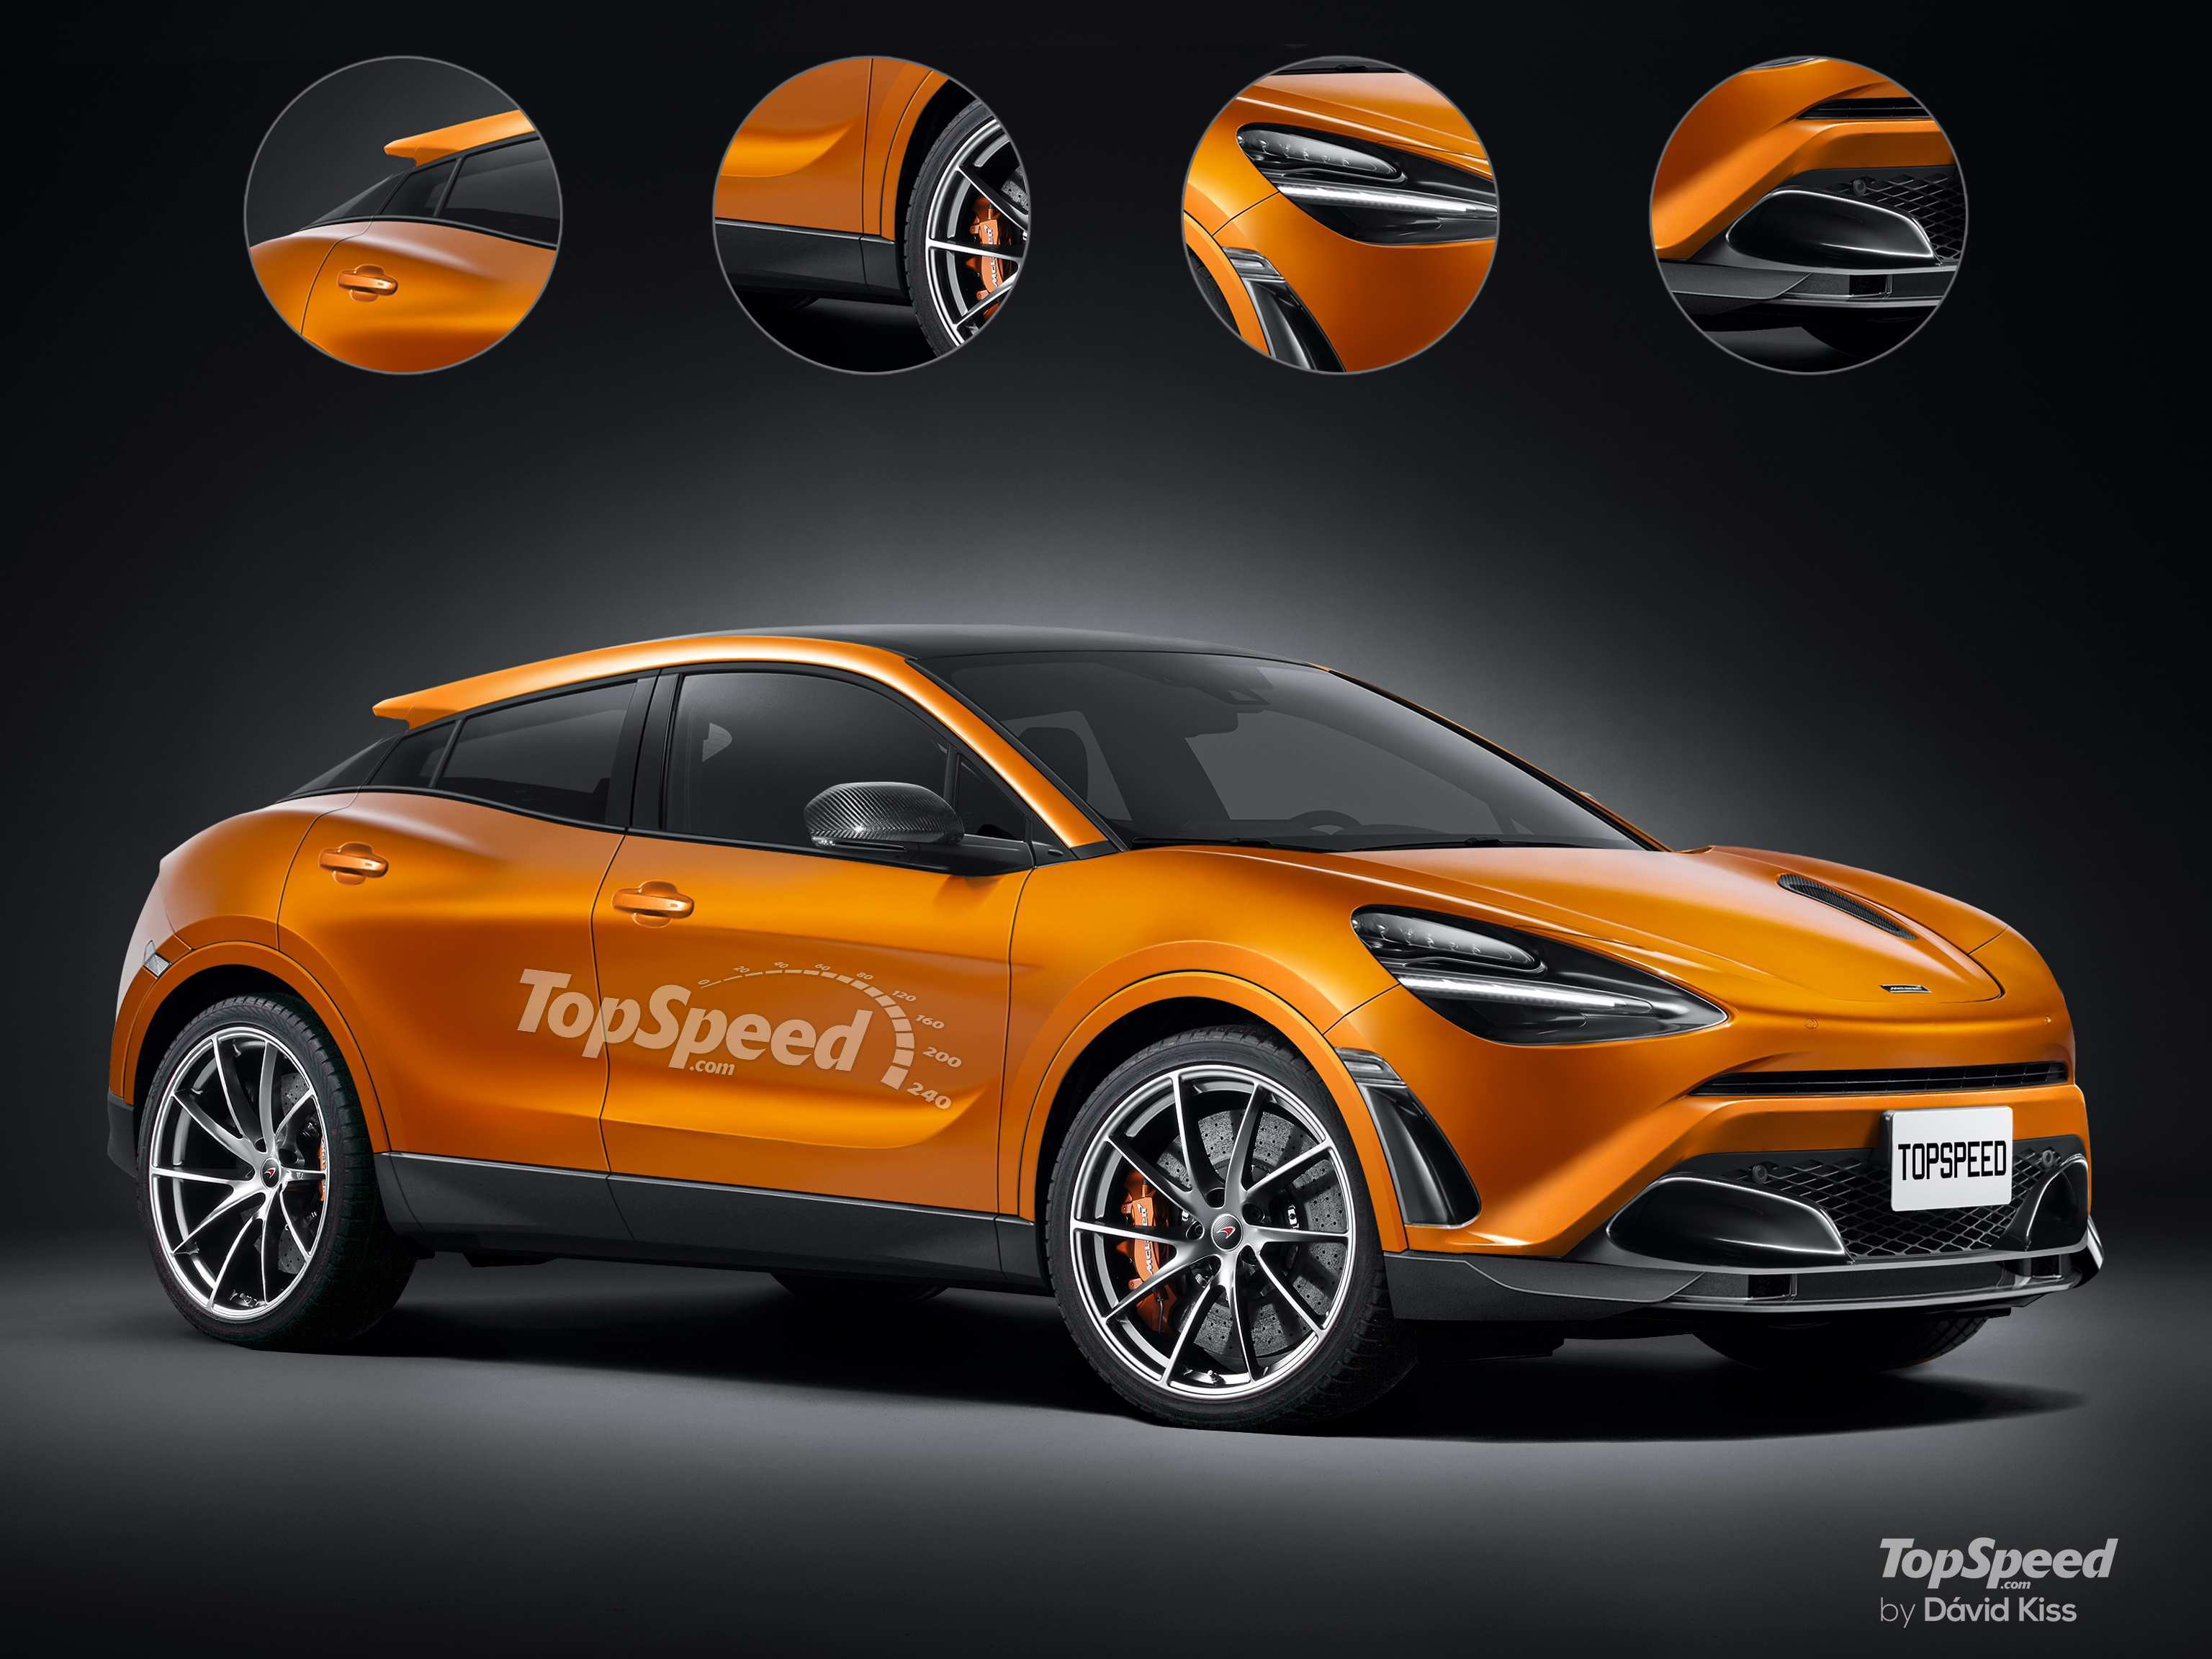 85 Best Review 2020 Mclaren Suv Research New with 2020 Mclaren Suv